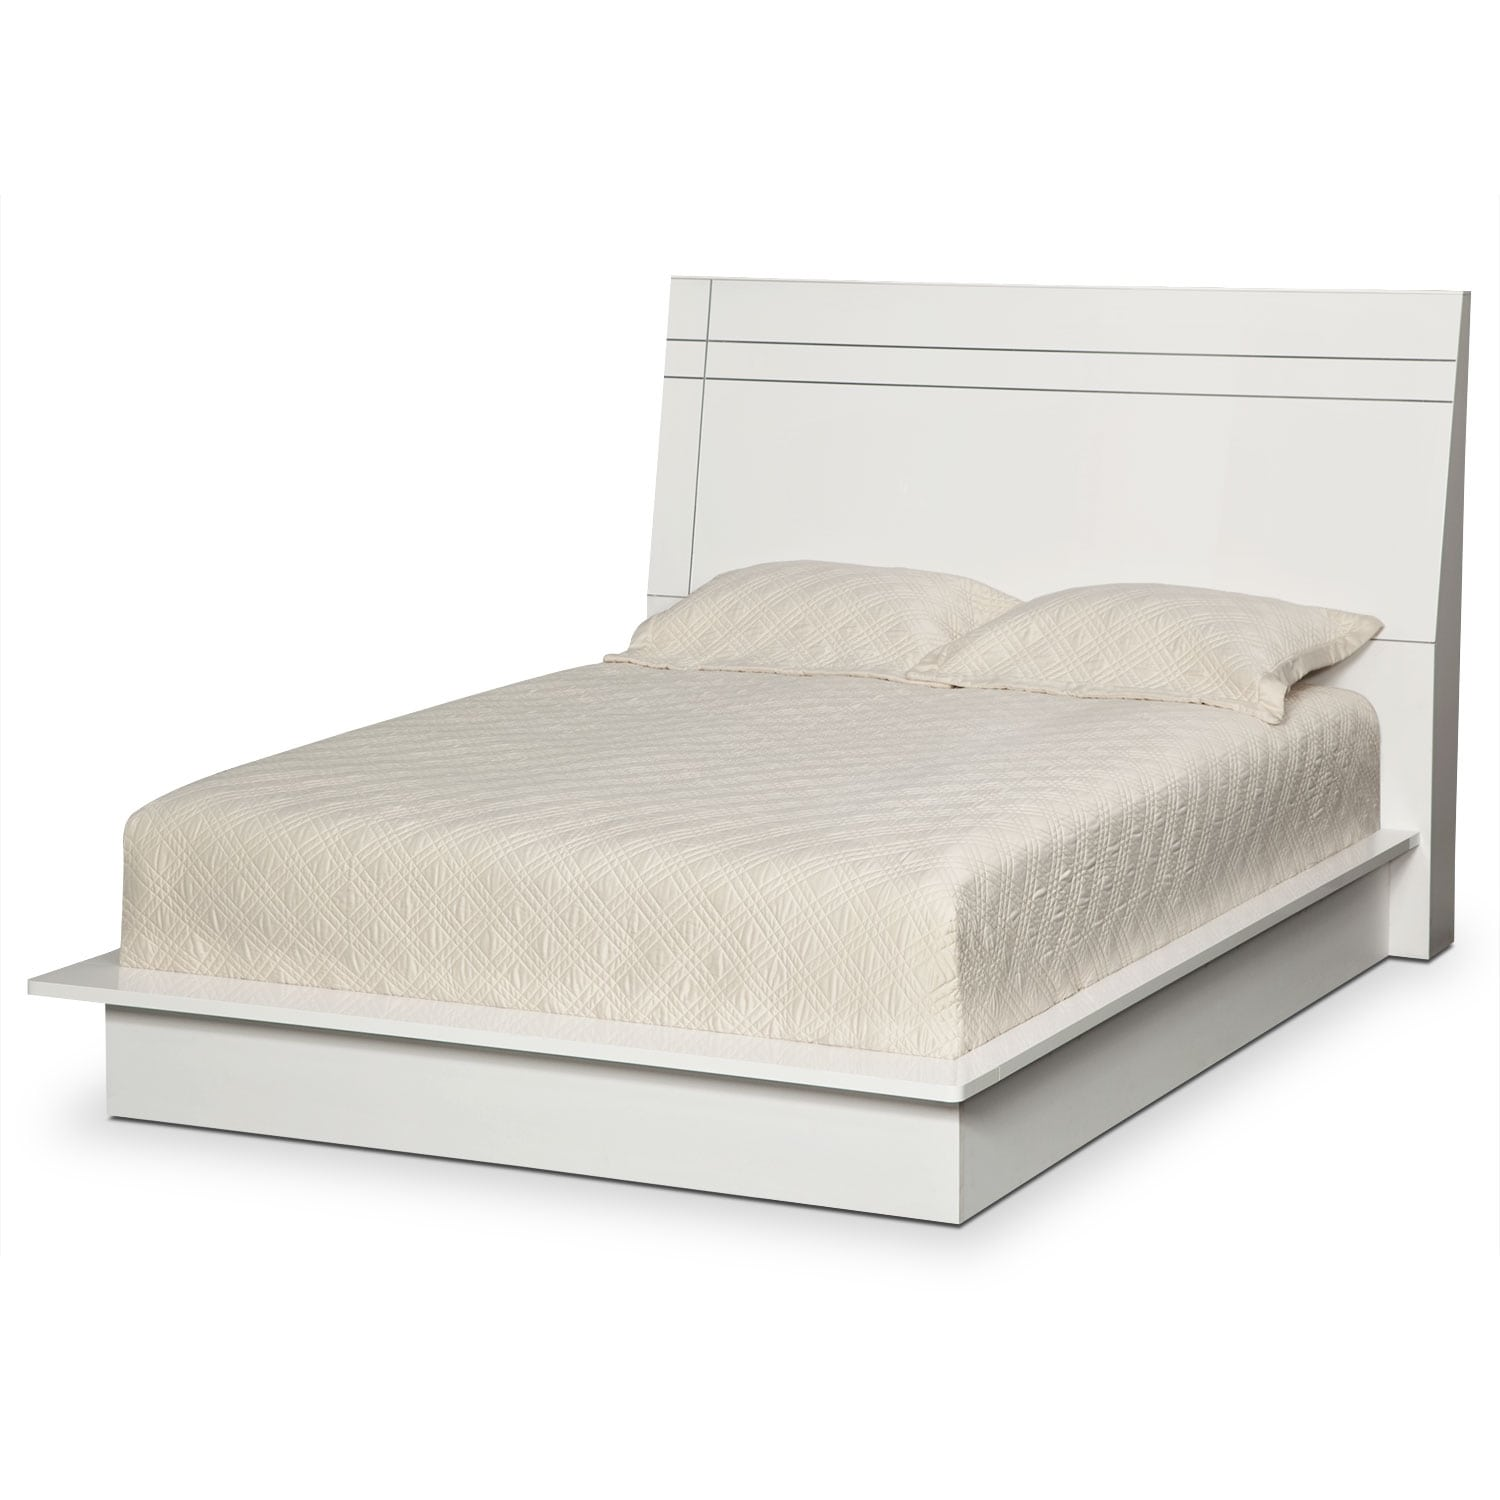 Zoom Room Bed Reviews Dimora Queen Panel Bed White American Signature Furniture